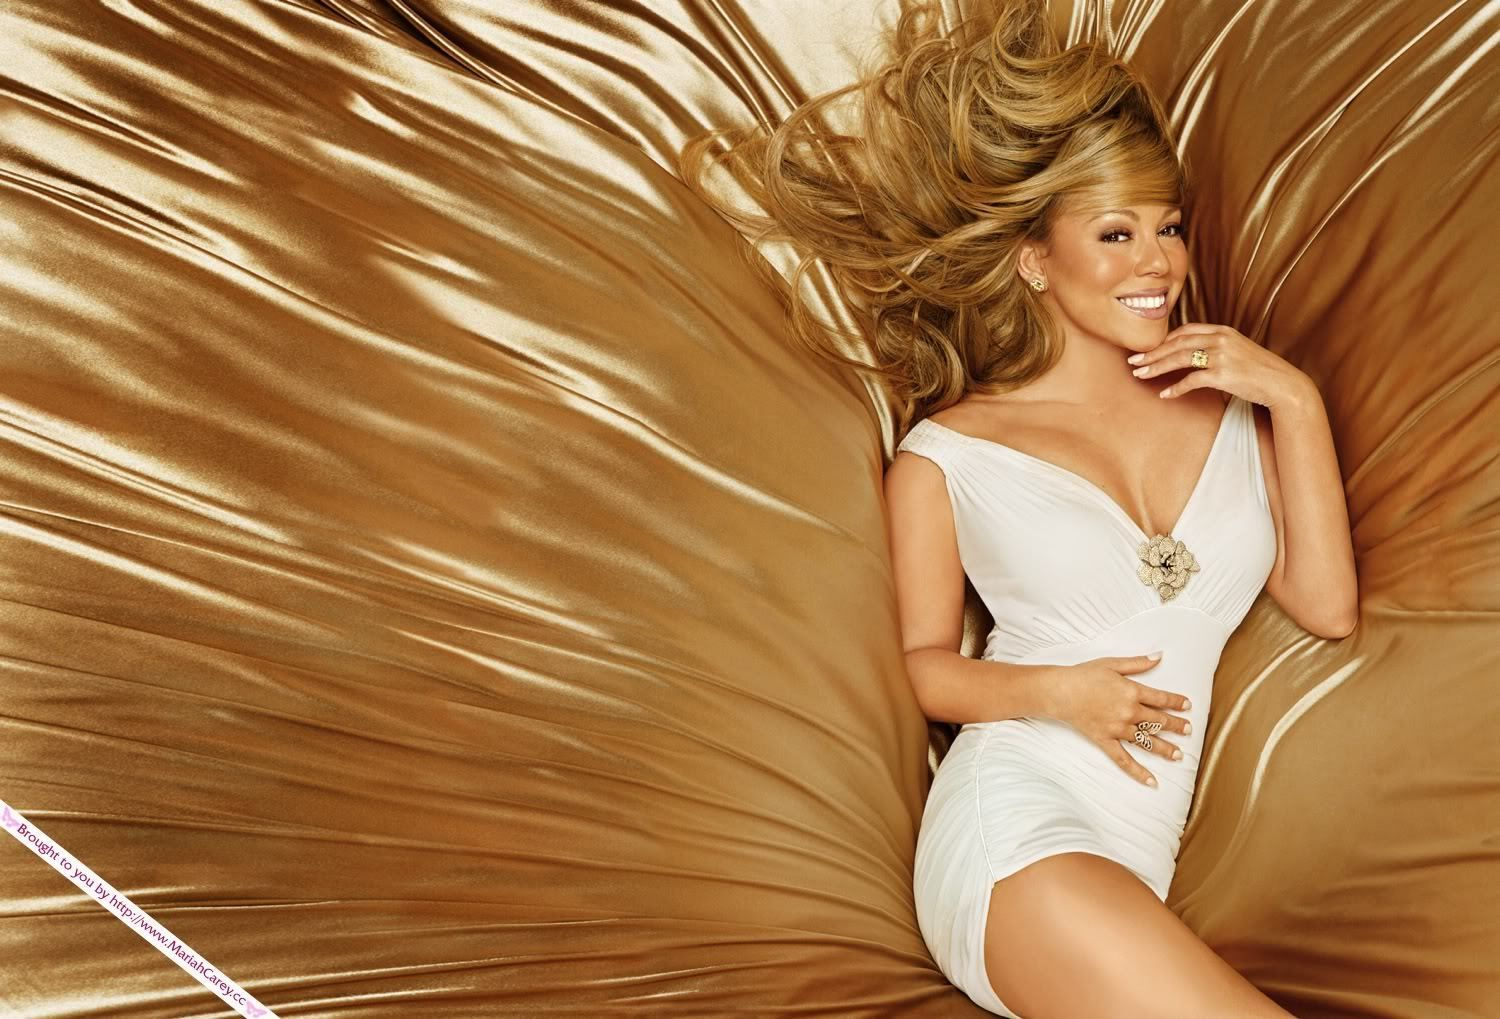 To Download Or Set This Free Mariah Carey Wallpaper As The Desktop Background Image For Your